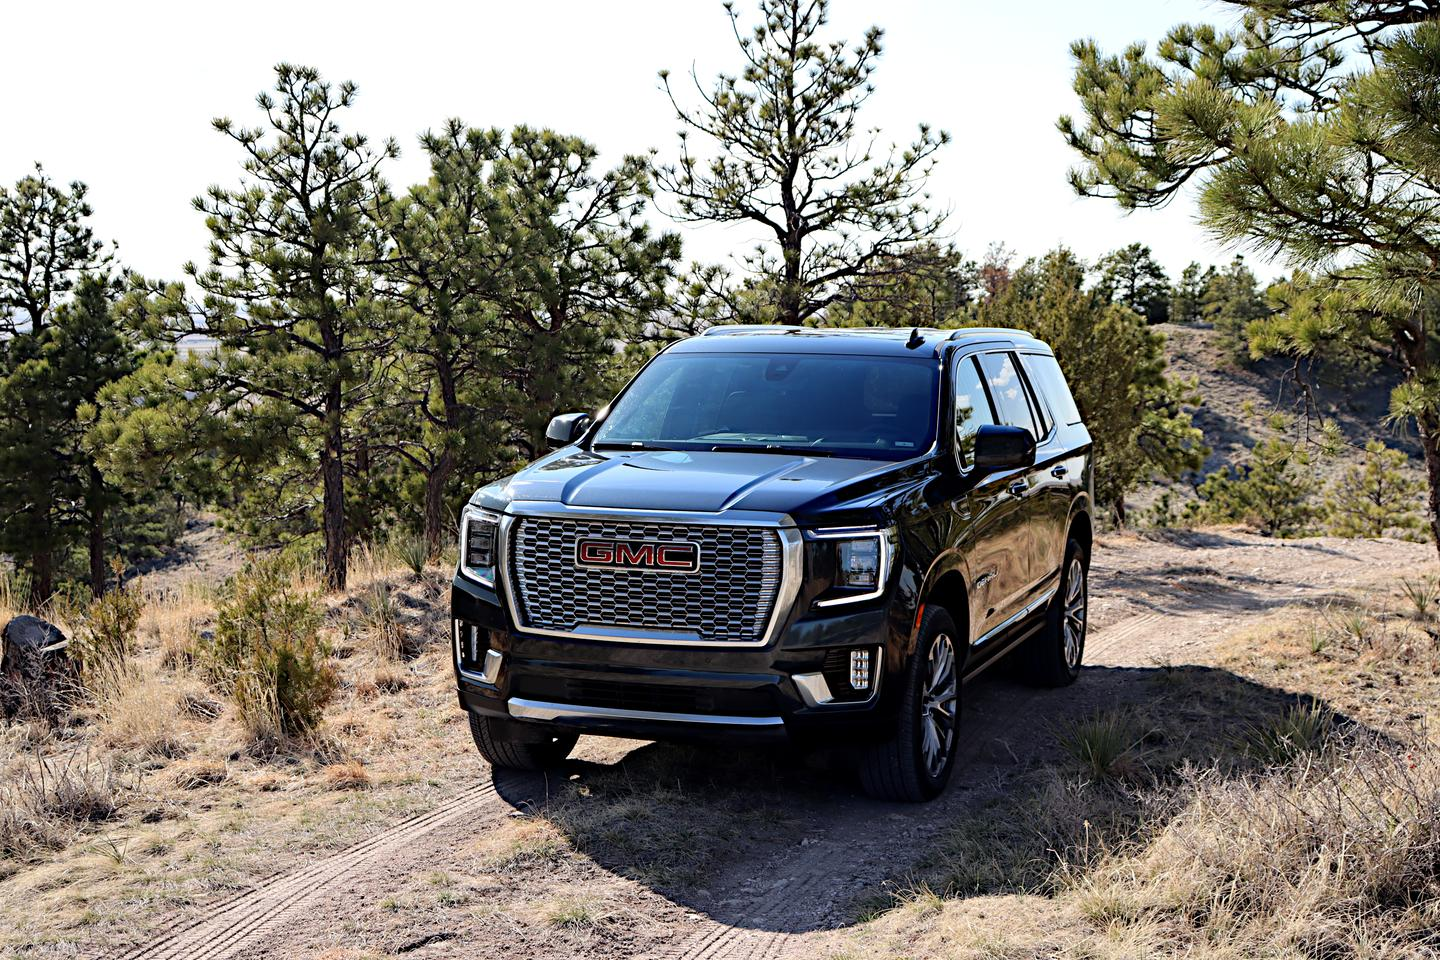 The GMC Yukon shares a platform with the lower-priced Chevrolet Suburban and the higher-priced Cadillac Escalade